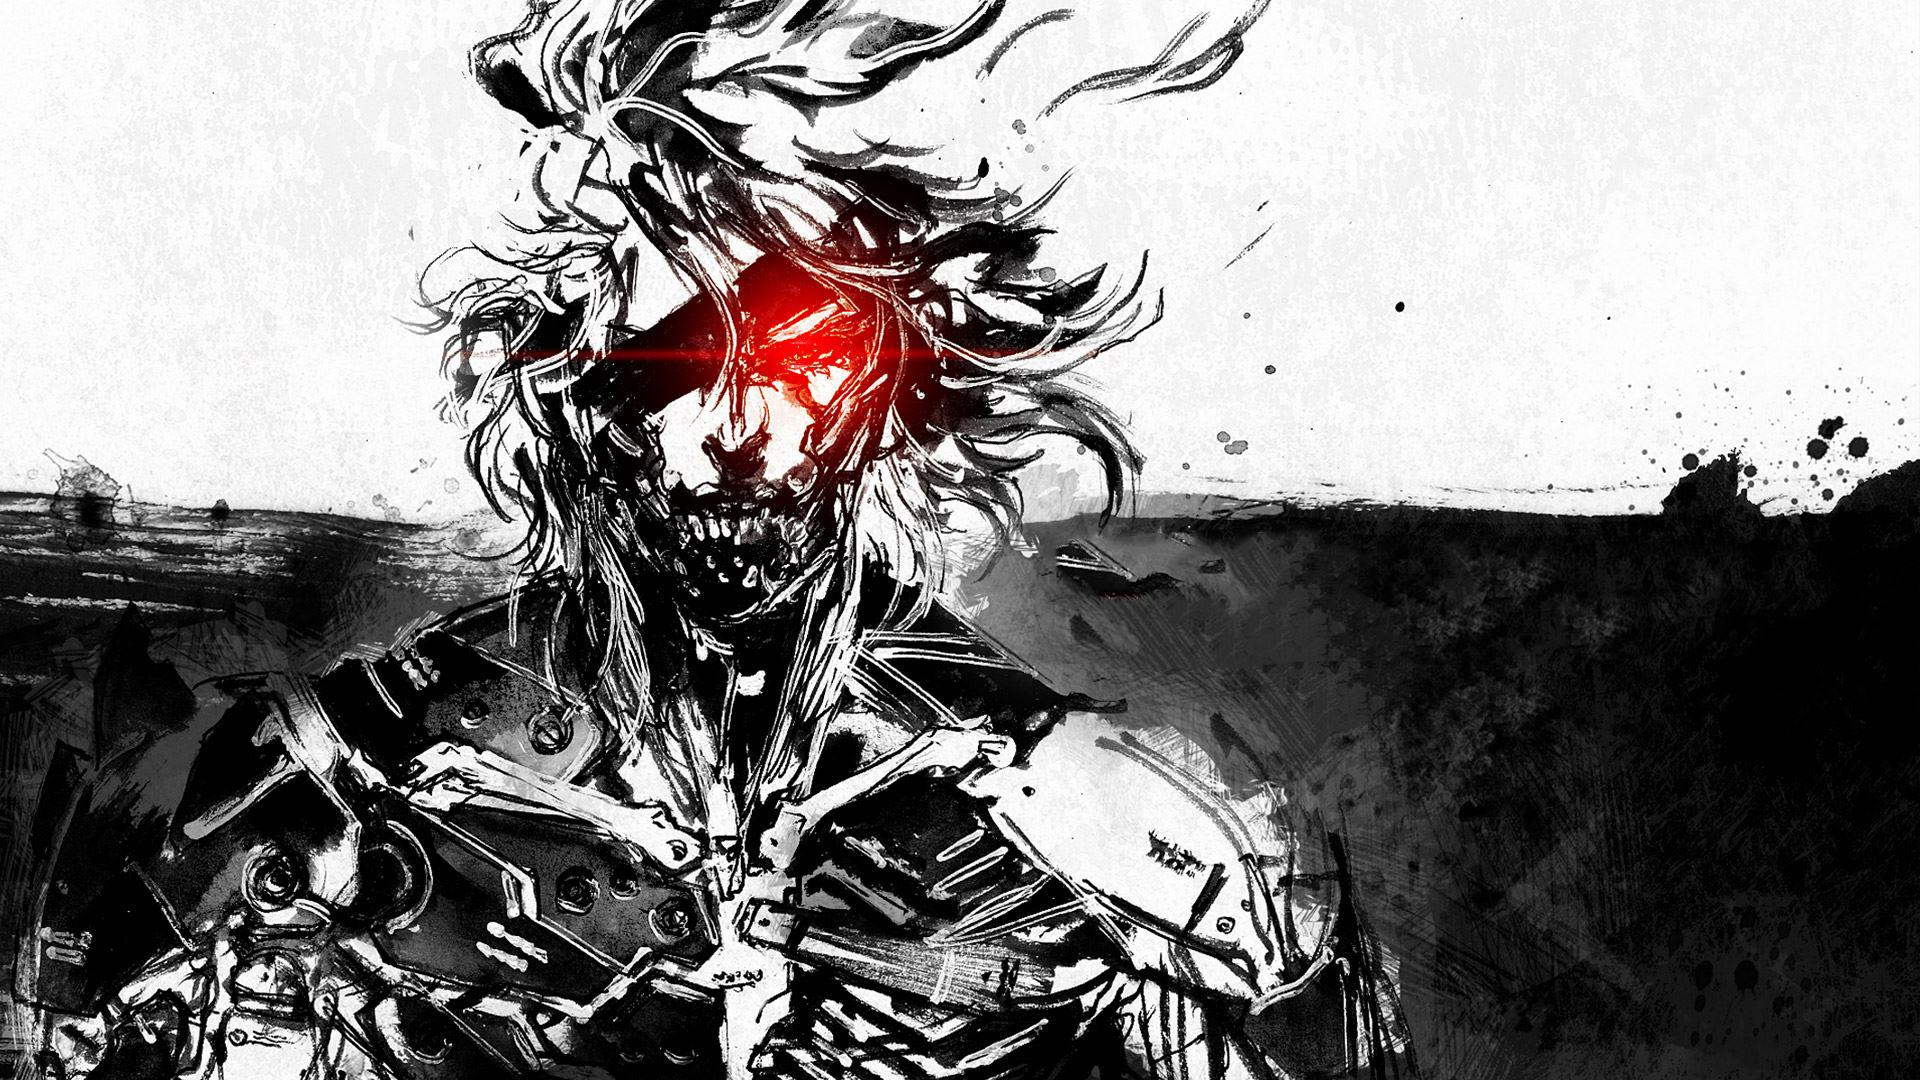 General 1920x1080 Metal Gear Rising: Revengeance Raiden Metal Gear video games artwork